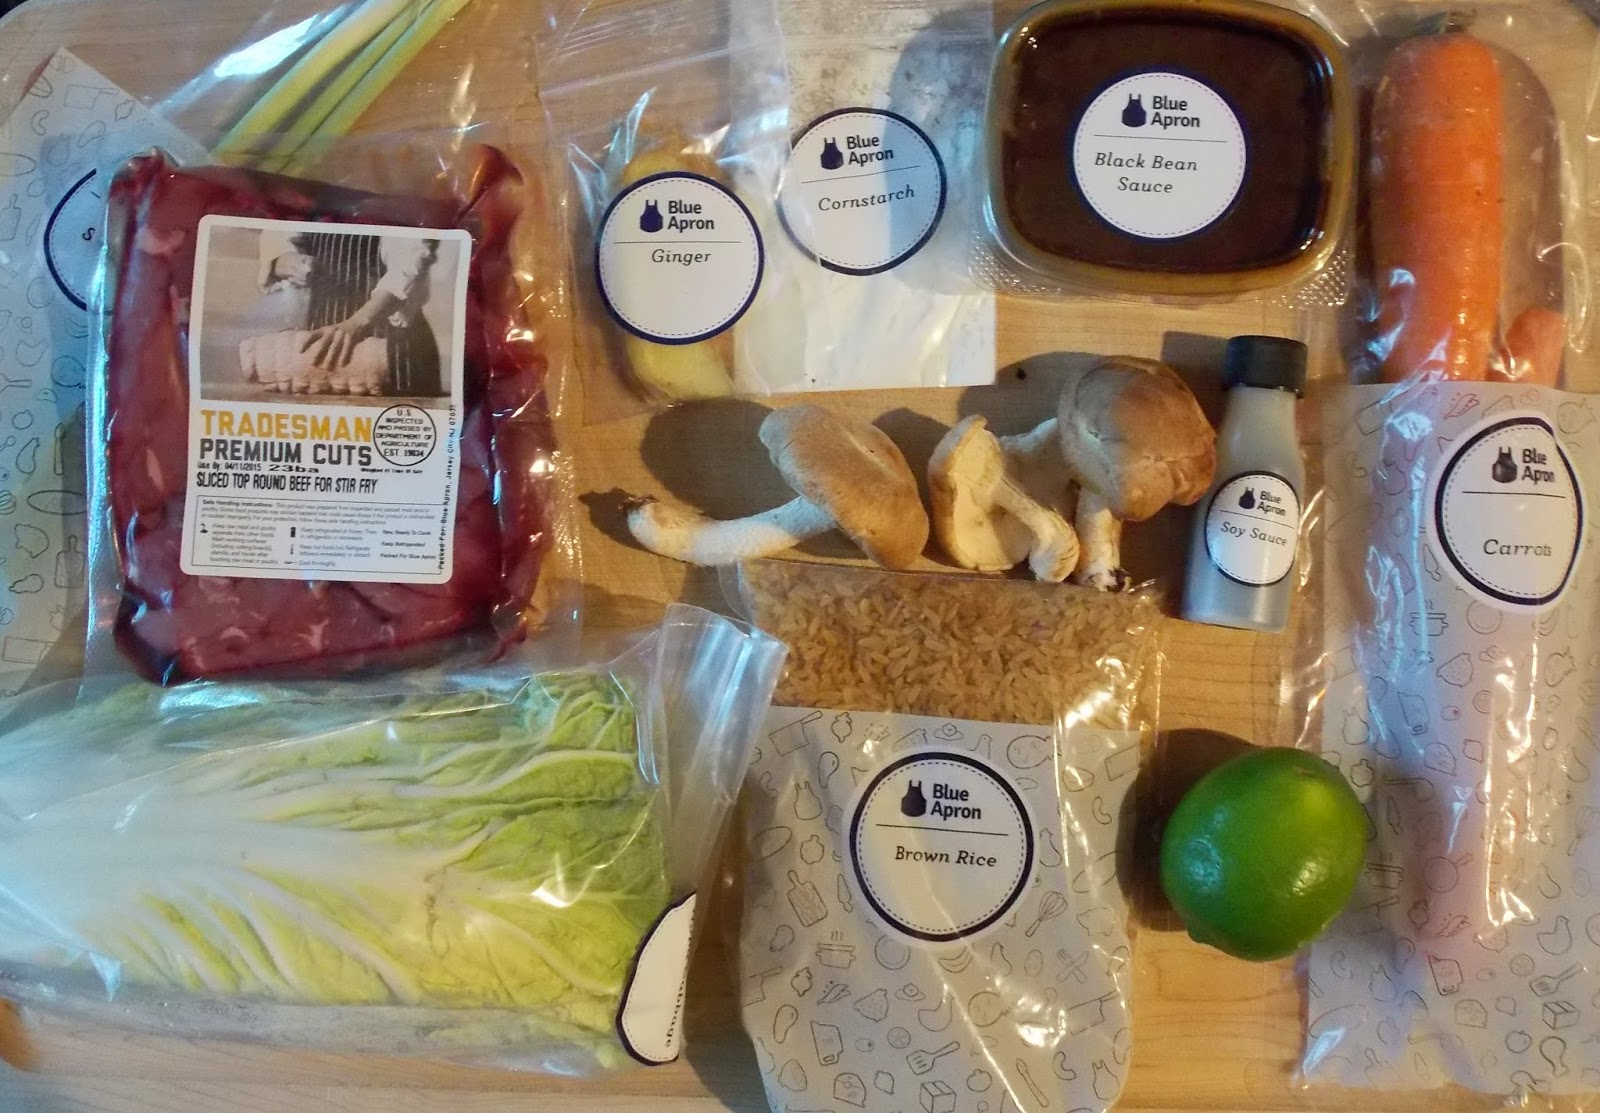 Blue apron waste - All Of The Ingredients Come Labeled And Portioned So There Is No Waste